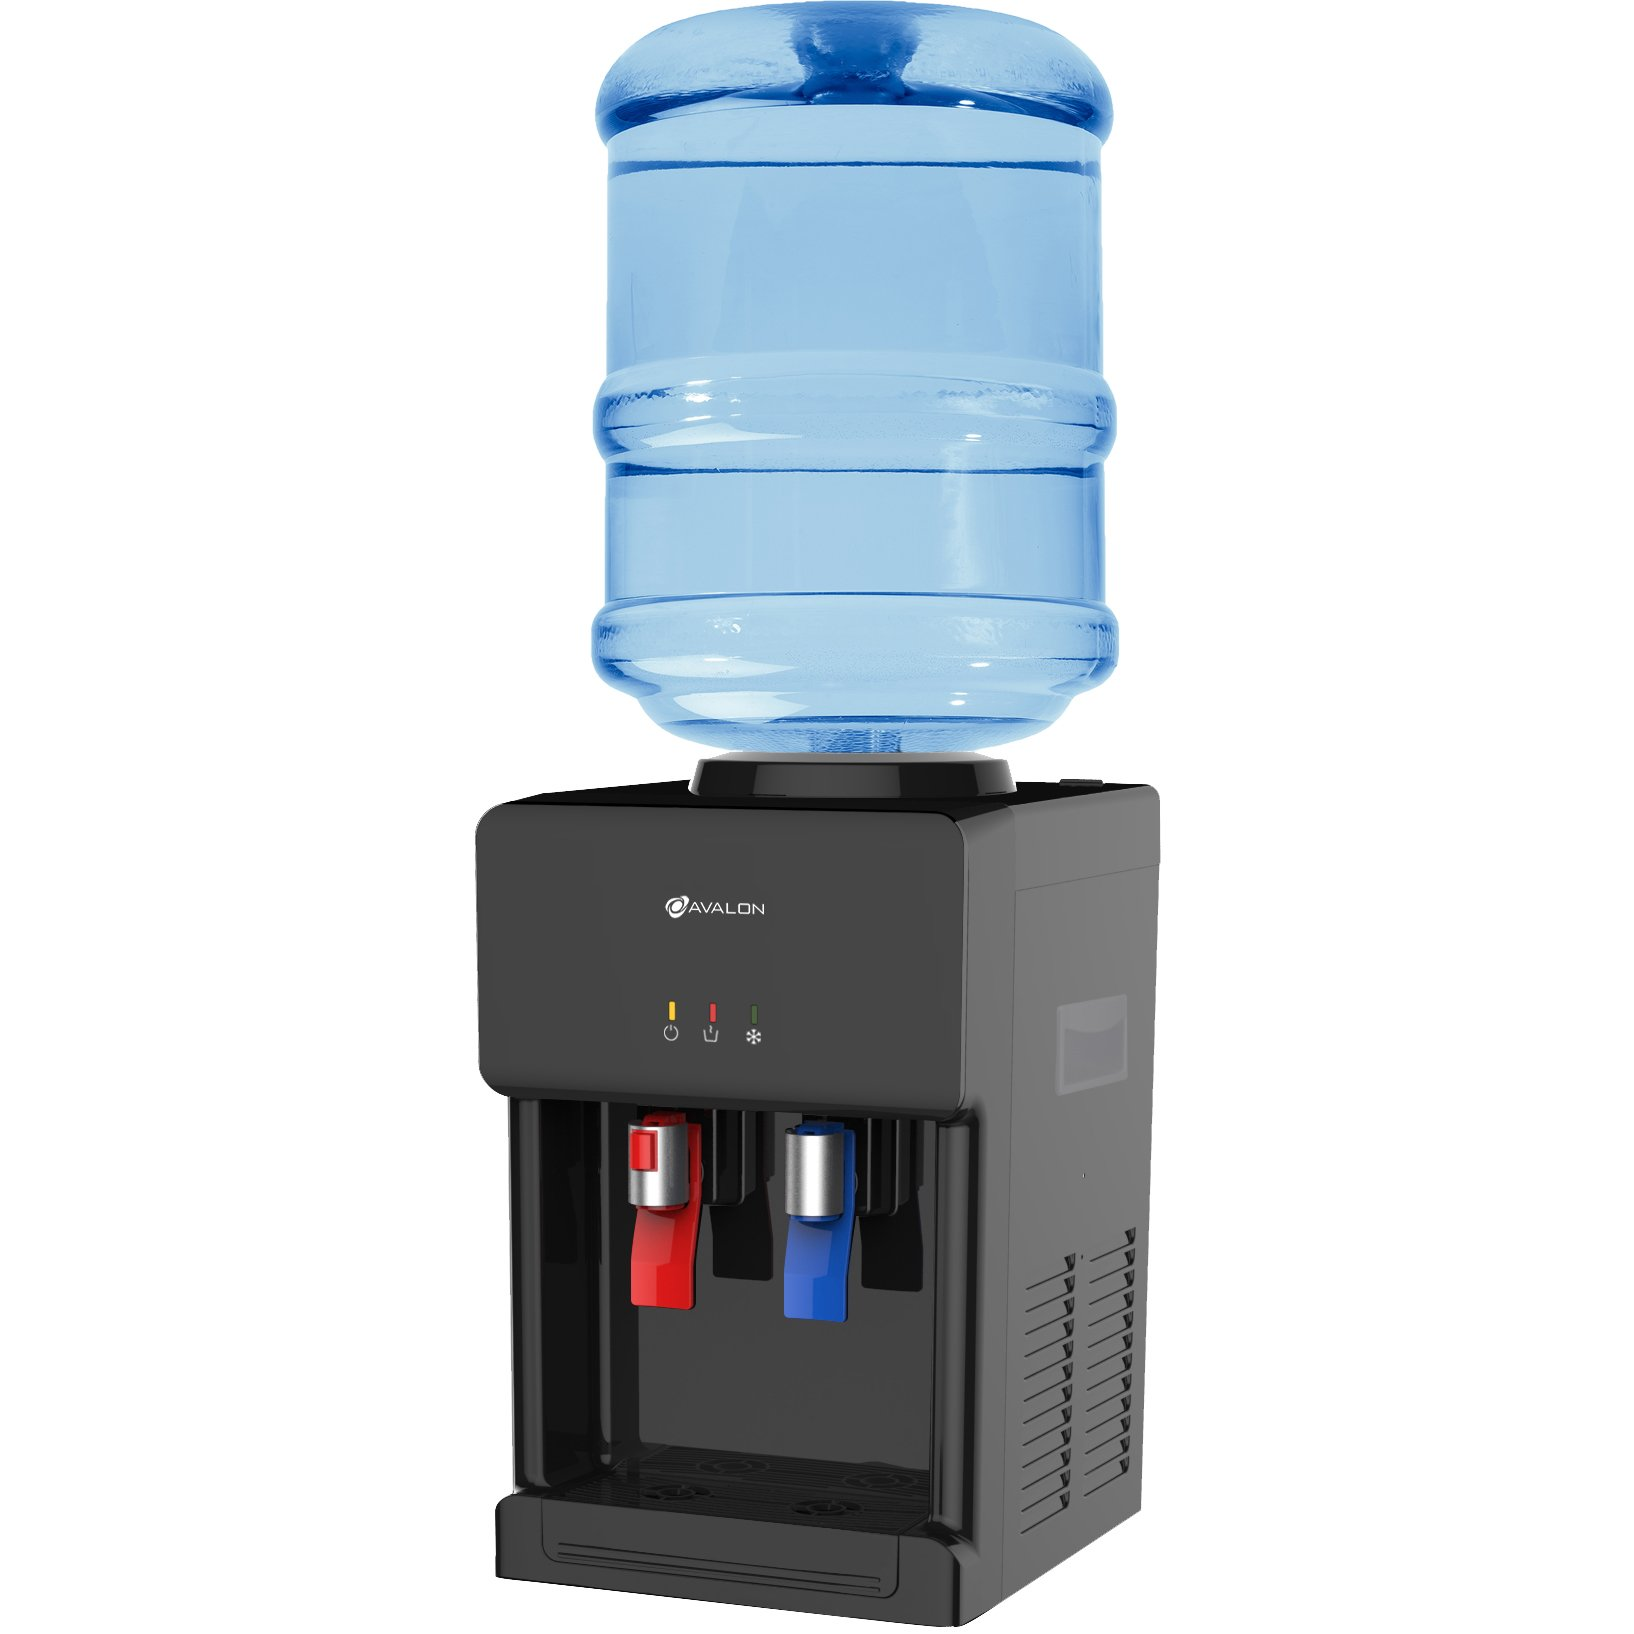 Avalon A1CTWTRCLRBLK Premium Hot/Cold Top Loading Countertop Water Cooler Dispenser With Child Safety Lock, Black